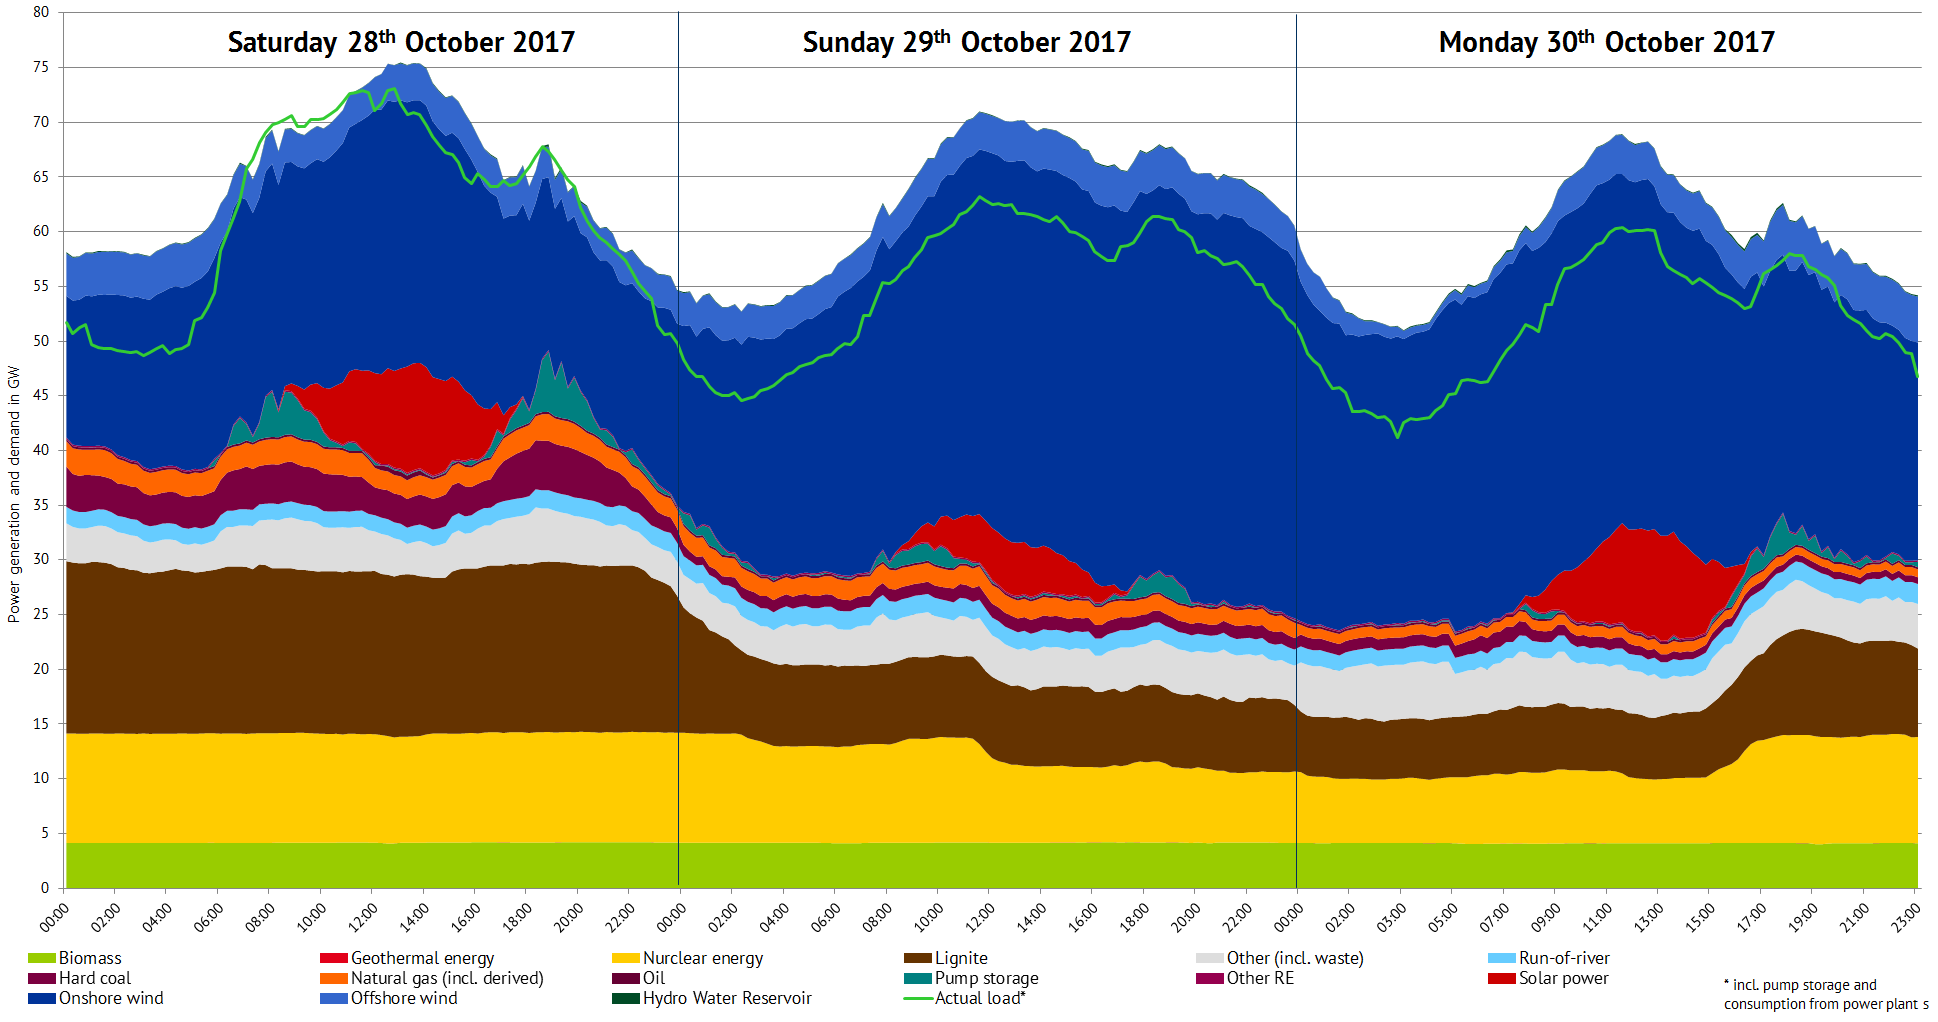 Electricity generation and load in Germany. Source: ENTSO-E Transparency, own figure